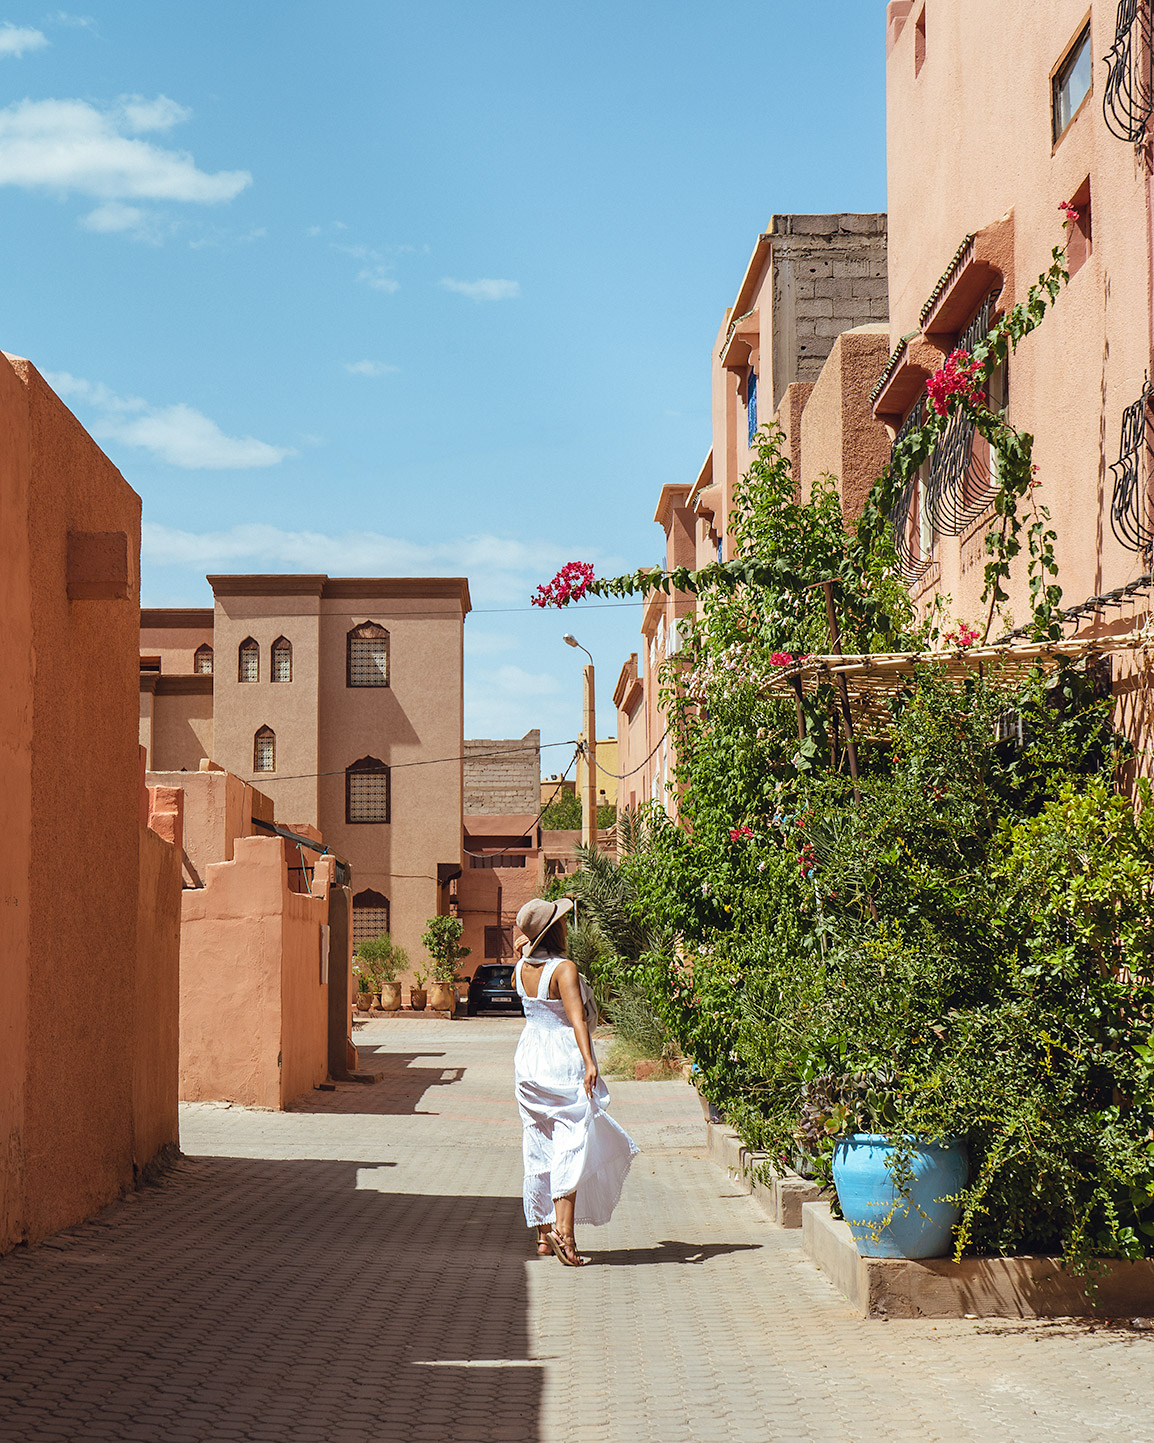 Maria walking on a streets of Ouarzazate